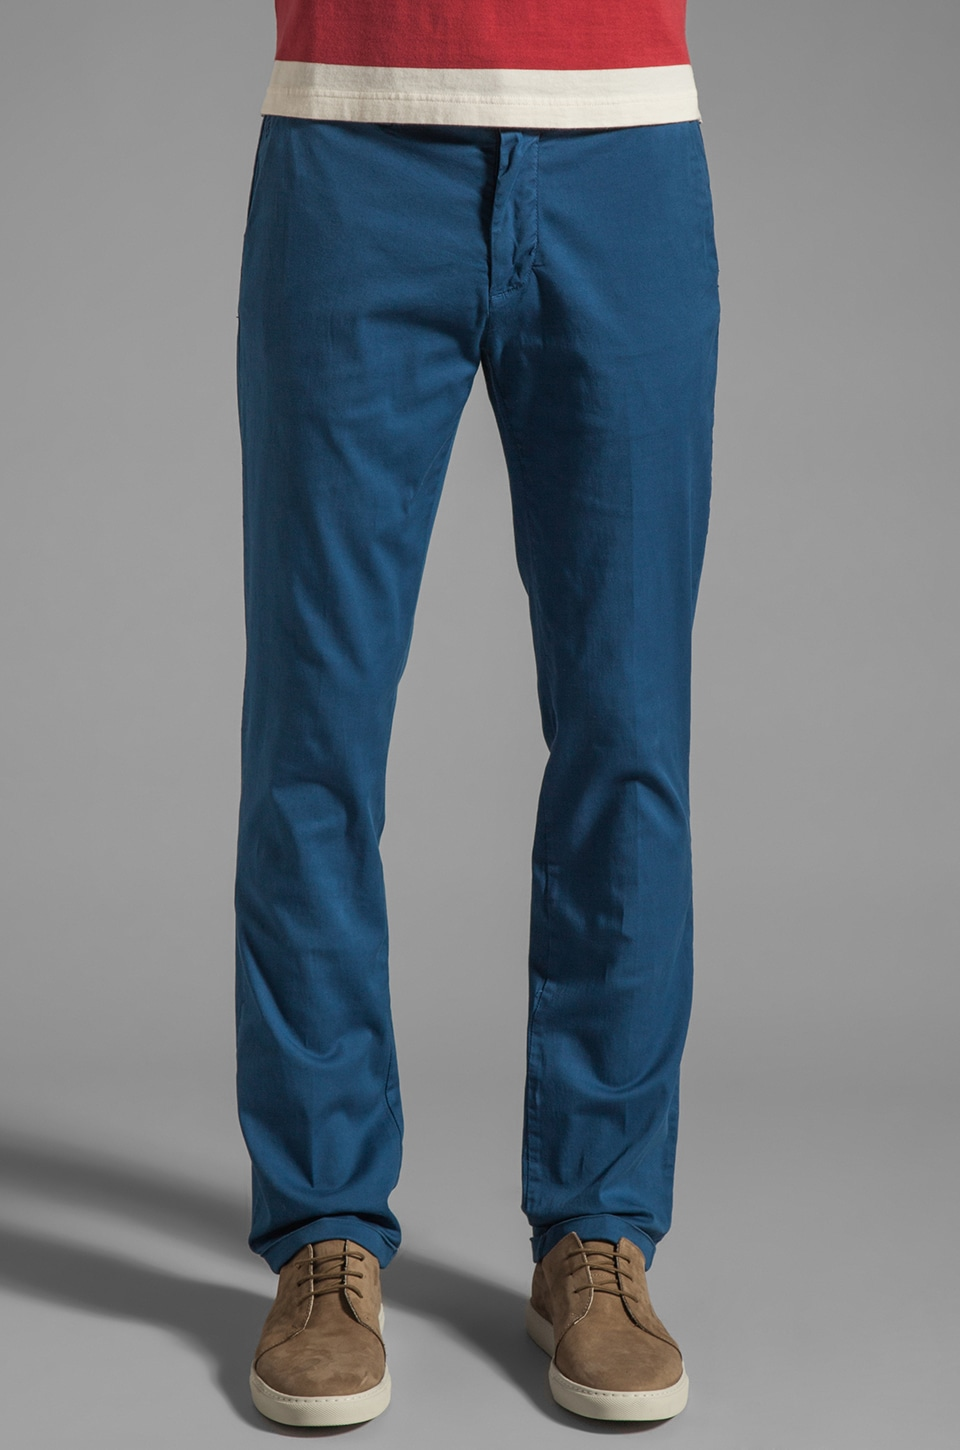 GANT Rugger Summer Chino in Light Blue